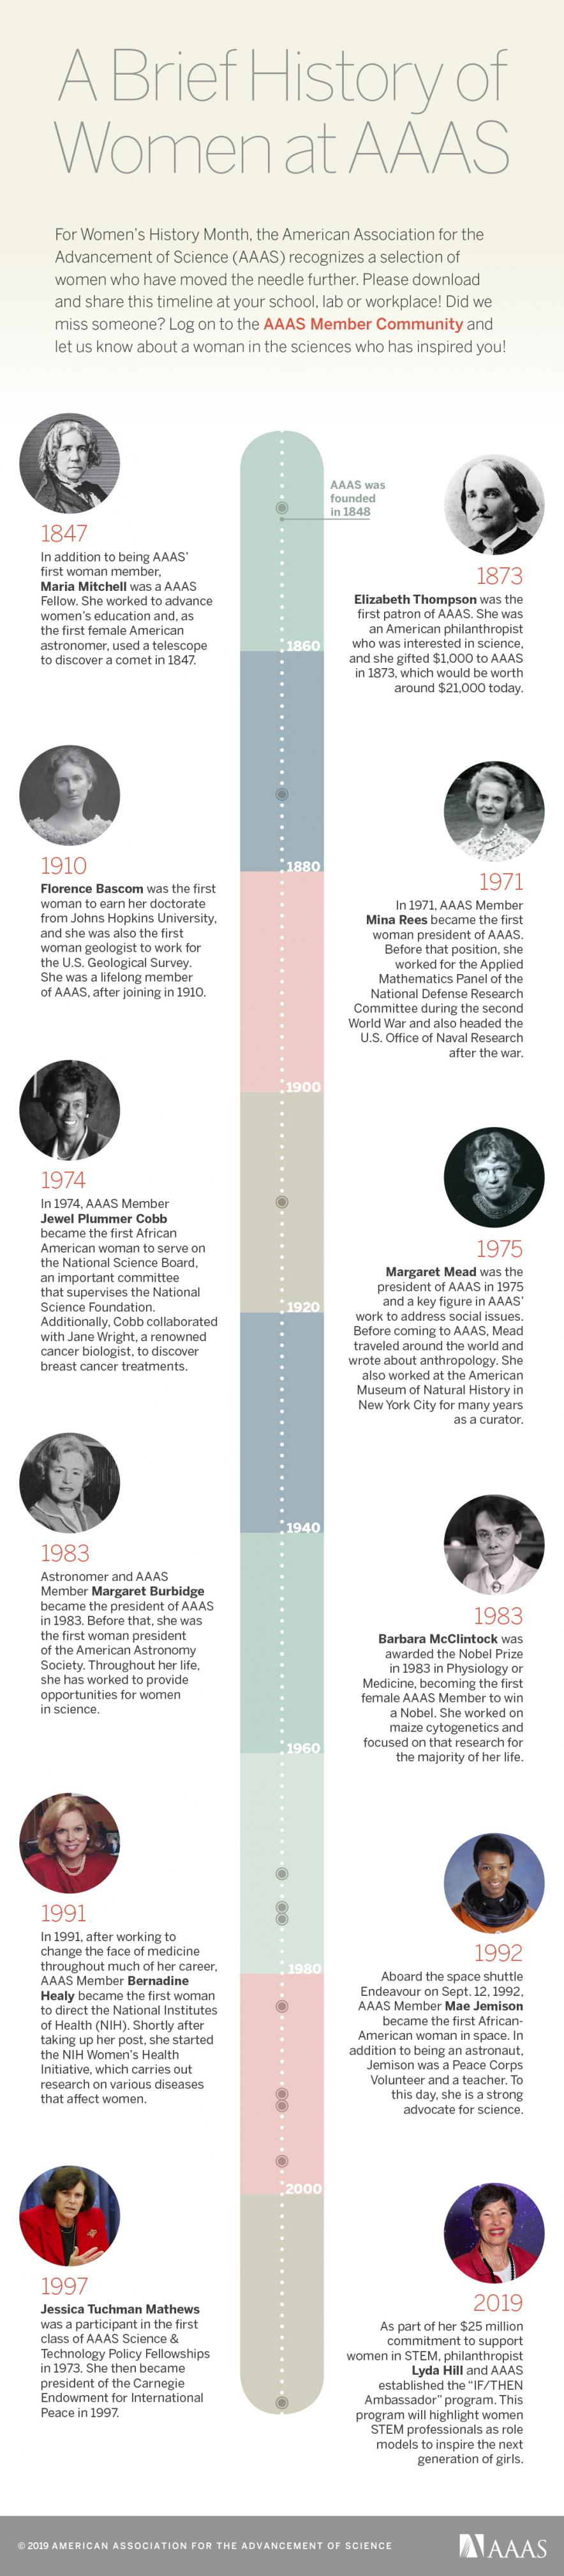 A Brief History of AAAS Women